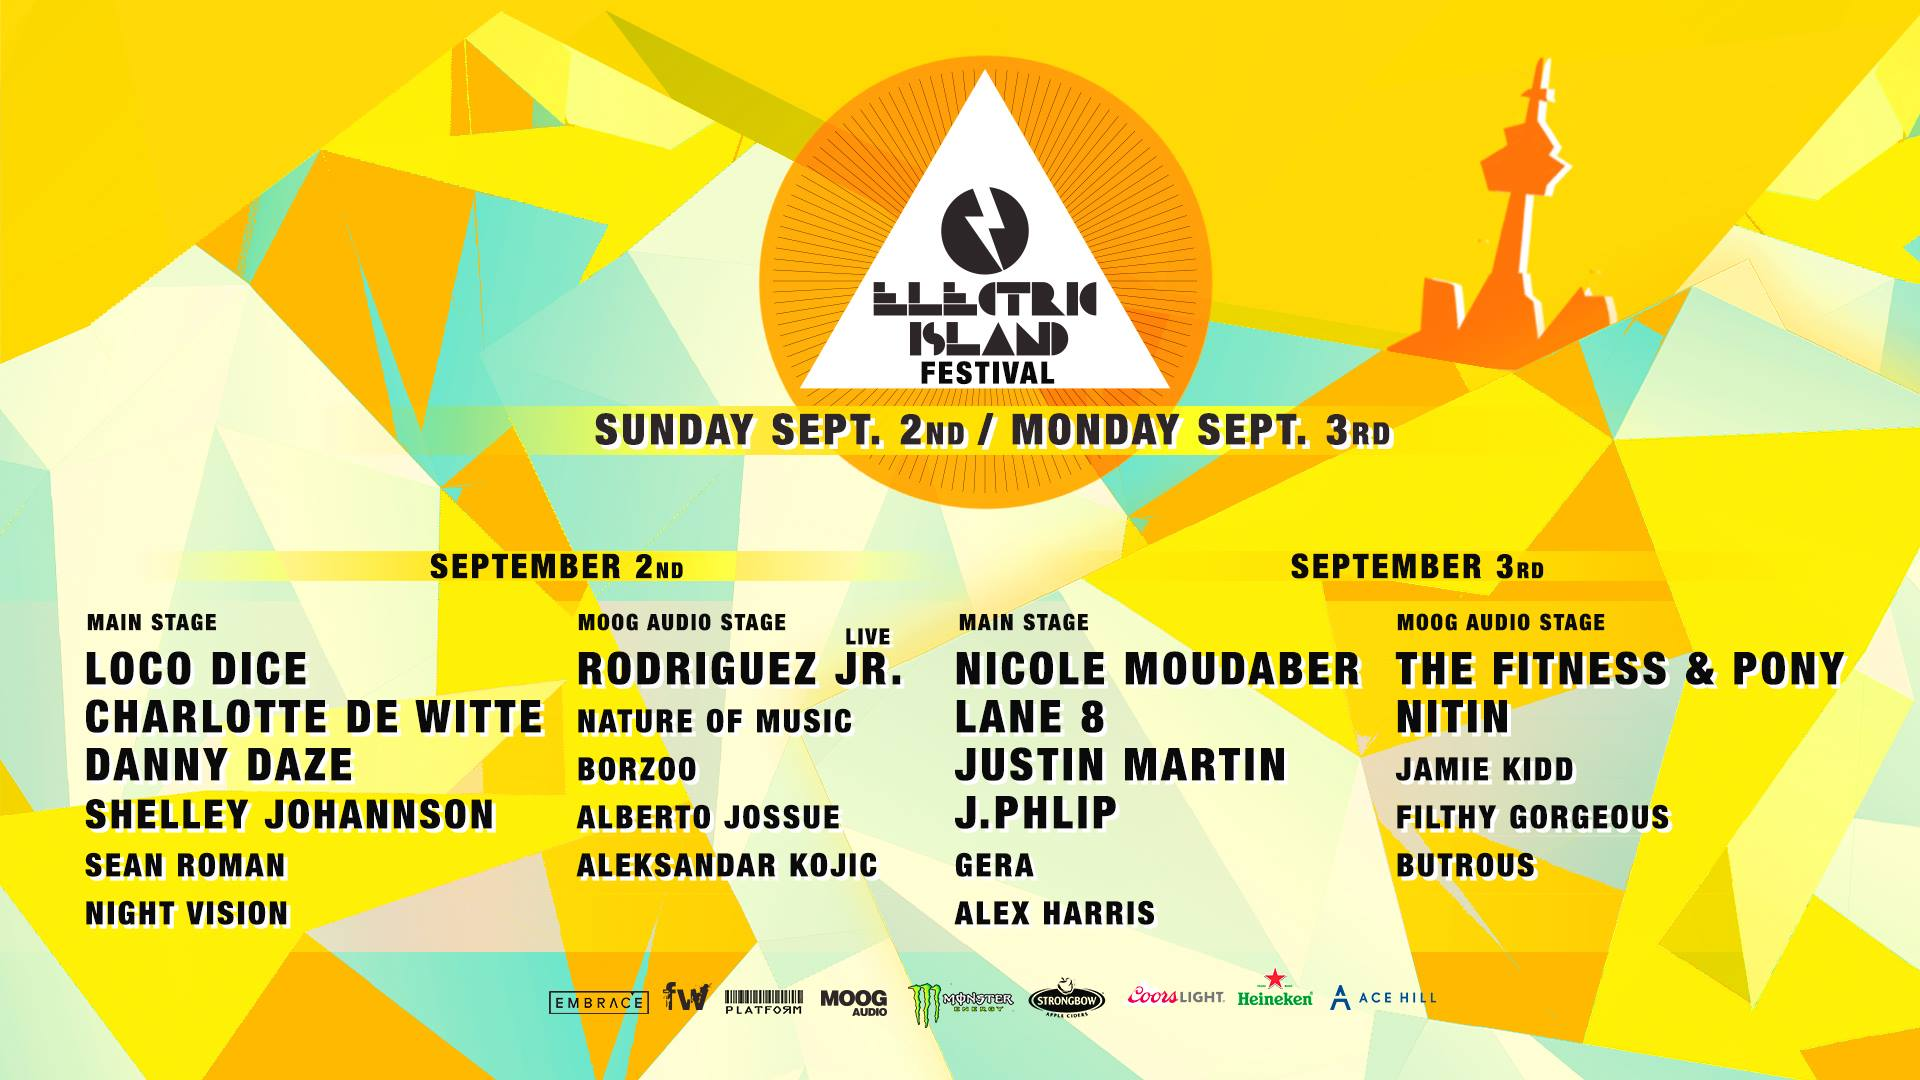 5 must-see sets at Toronto's Electric Island season finaleEI Sept 2 3 1